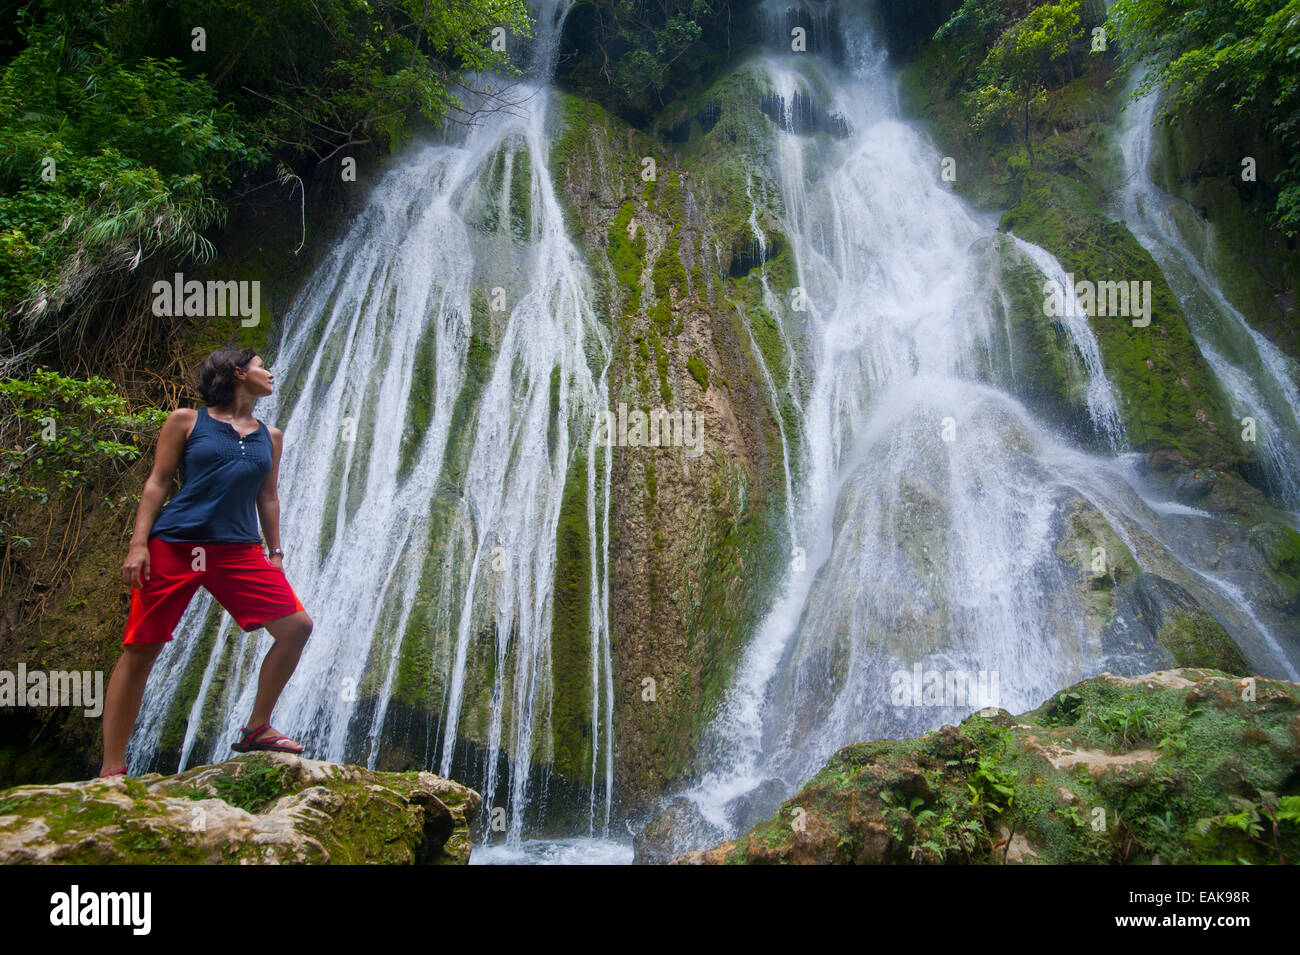 Woman looking at the Mele-Maat Cascades, Mele Maat, Efate Island, Shefa Province, Vanuatu - Stock Image